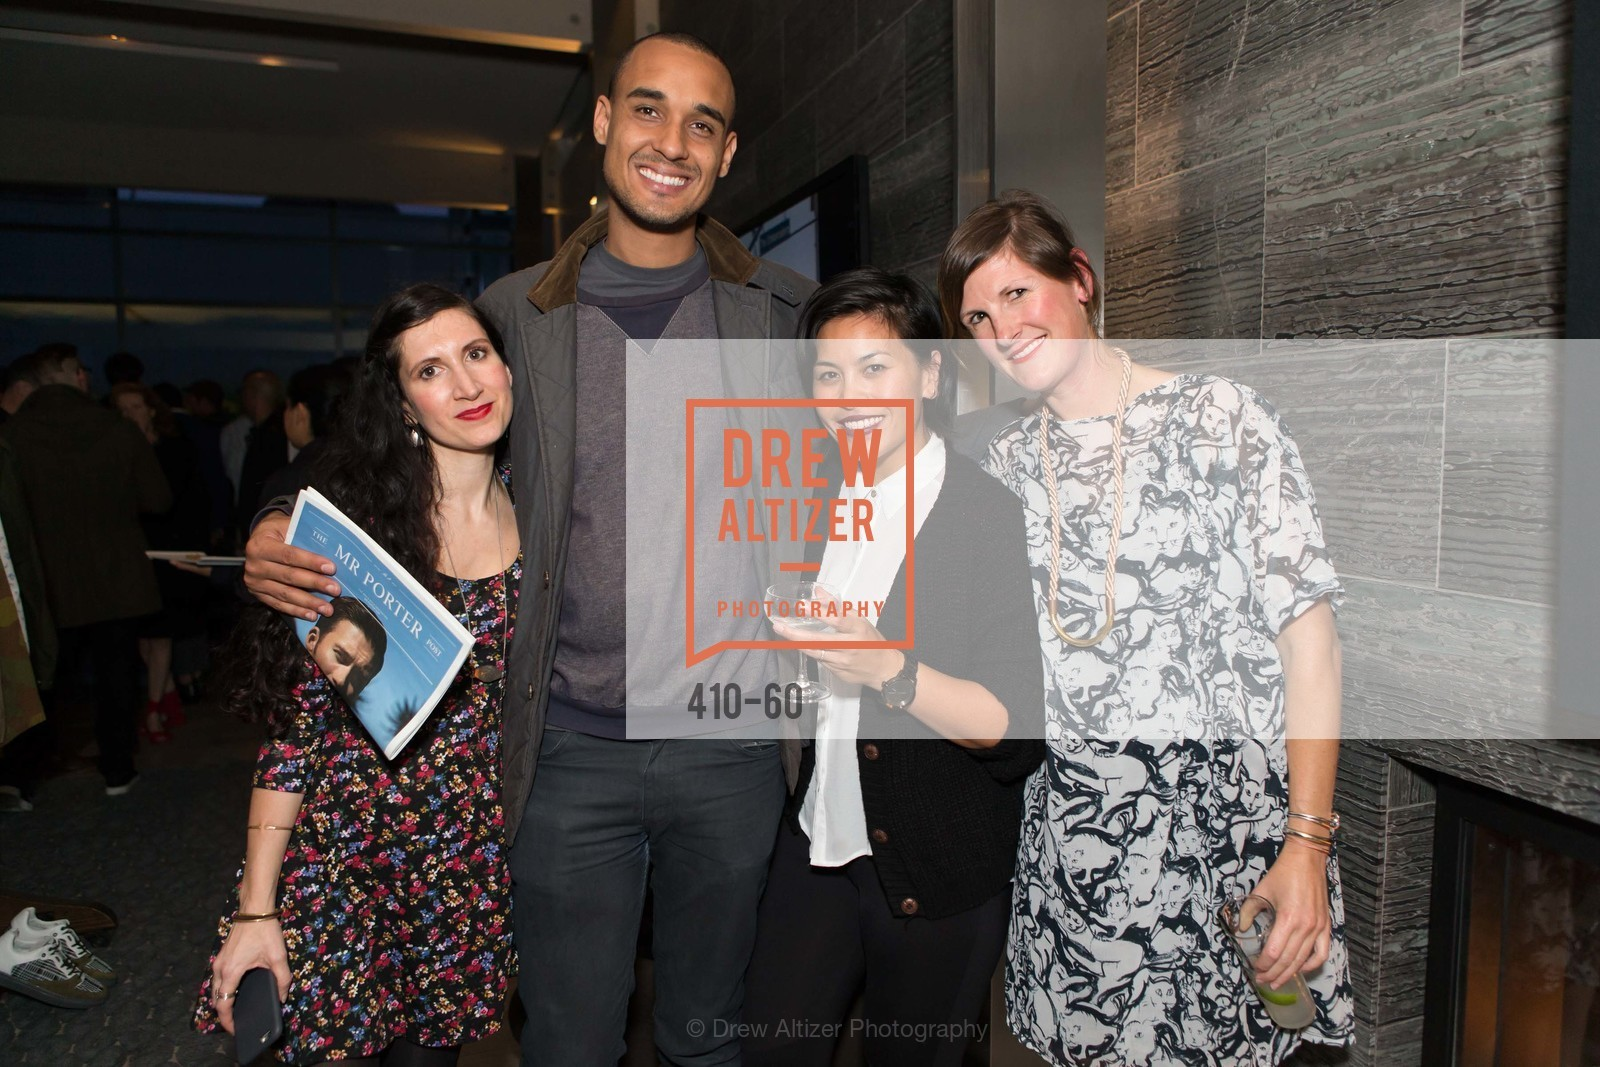 Rhonda Mendez, Stefan DeClerq, Cecelia Applelin, Maya Cochlin, MR PORTER Celebrate The San Francisco Issue of The Journal, The Battery Rooftop - The Battery SF, April 23rd, 2015,Drew Altizer, Drew Altizer Photography, full-service agency, private events, San Francisco photographer, photographer california